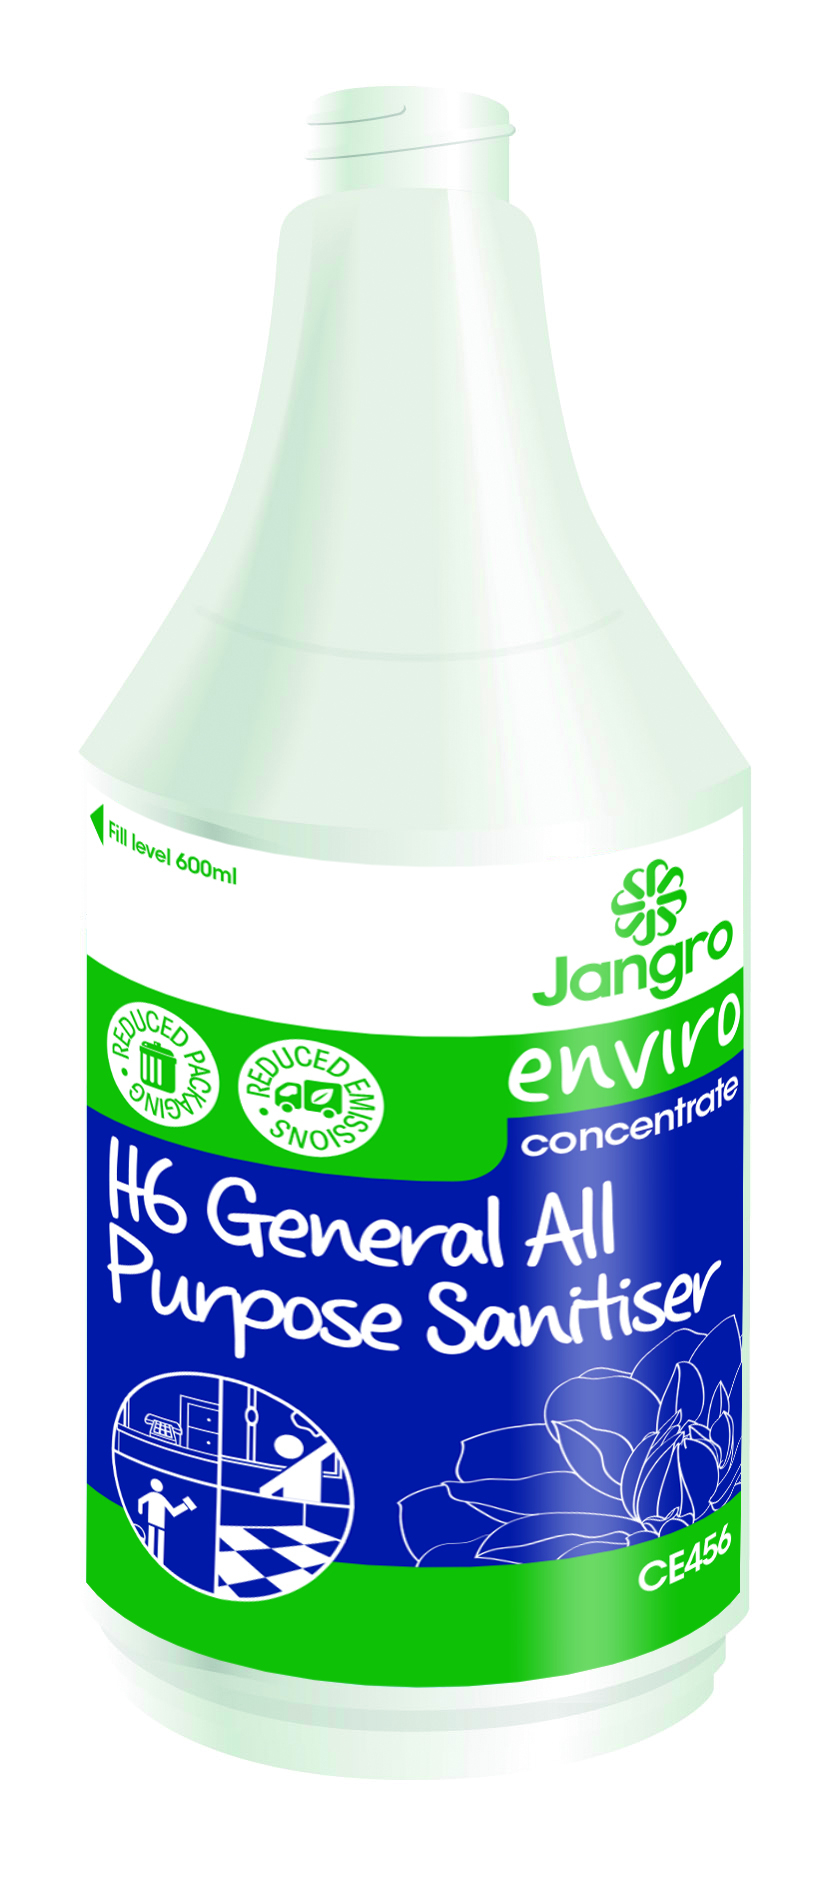 Spray Bottle Enviro H6 General All Purpose Cleaner